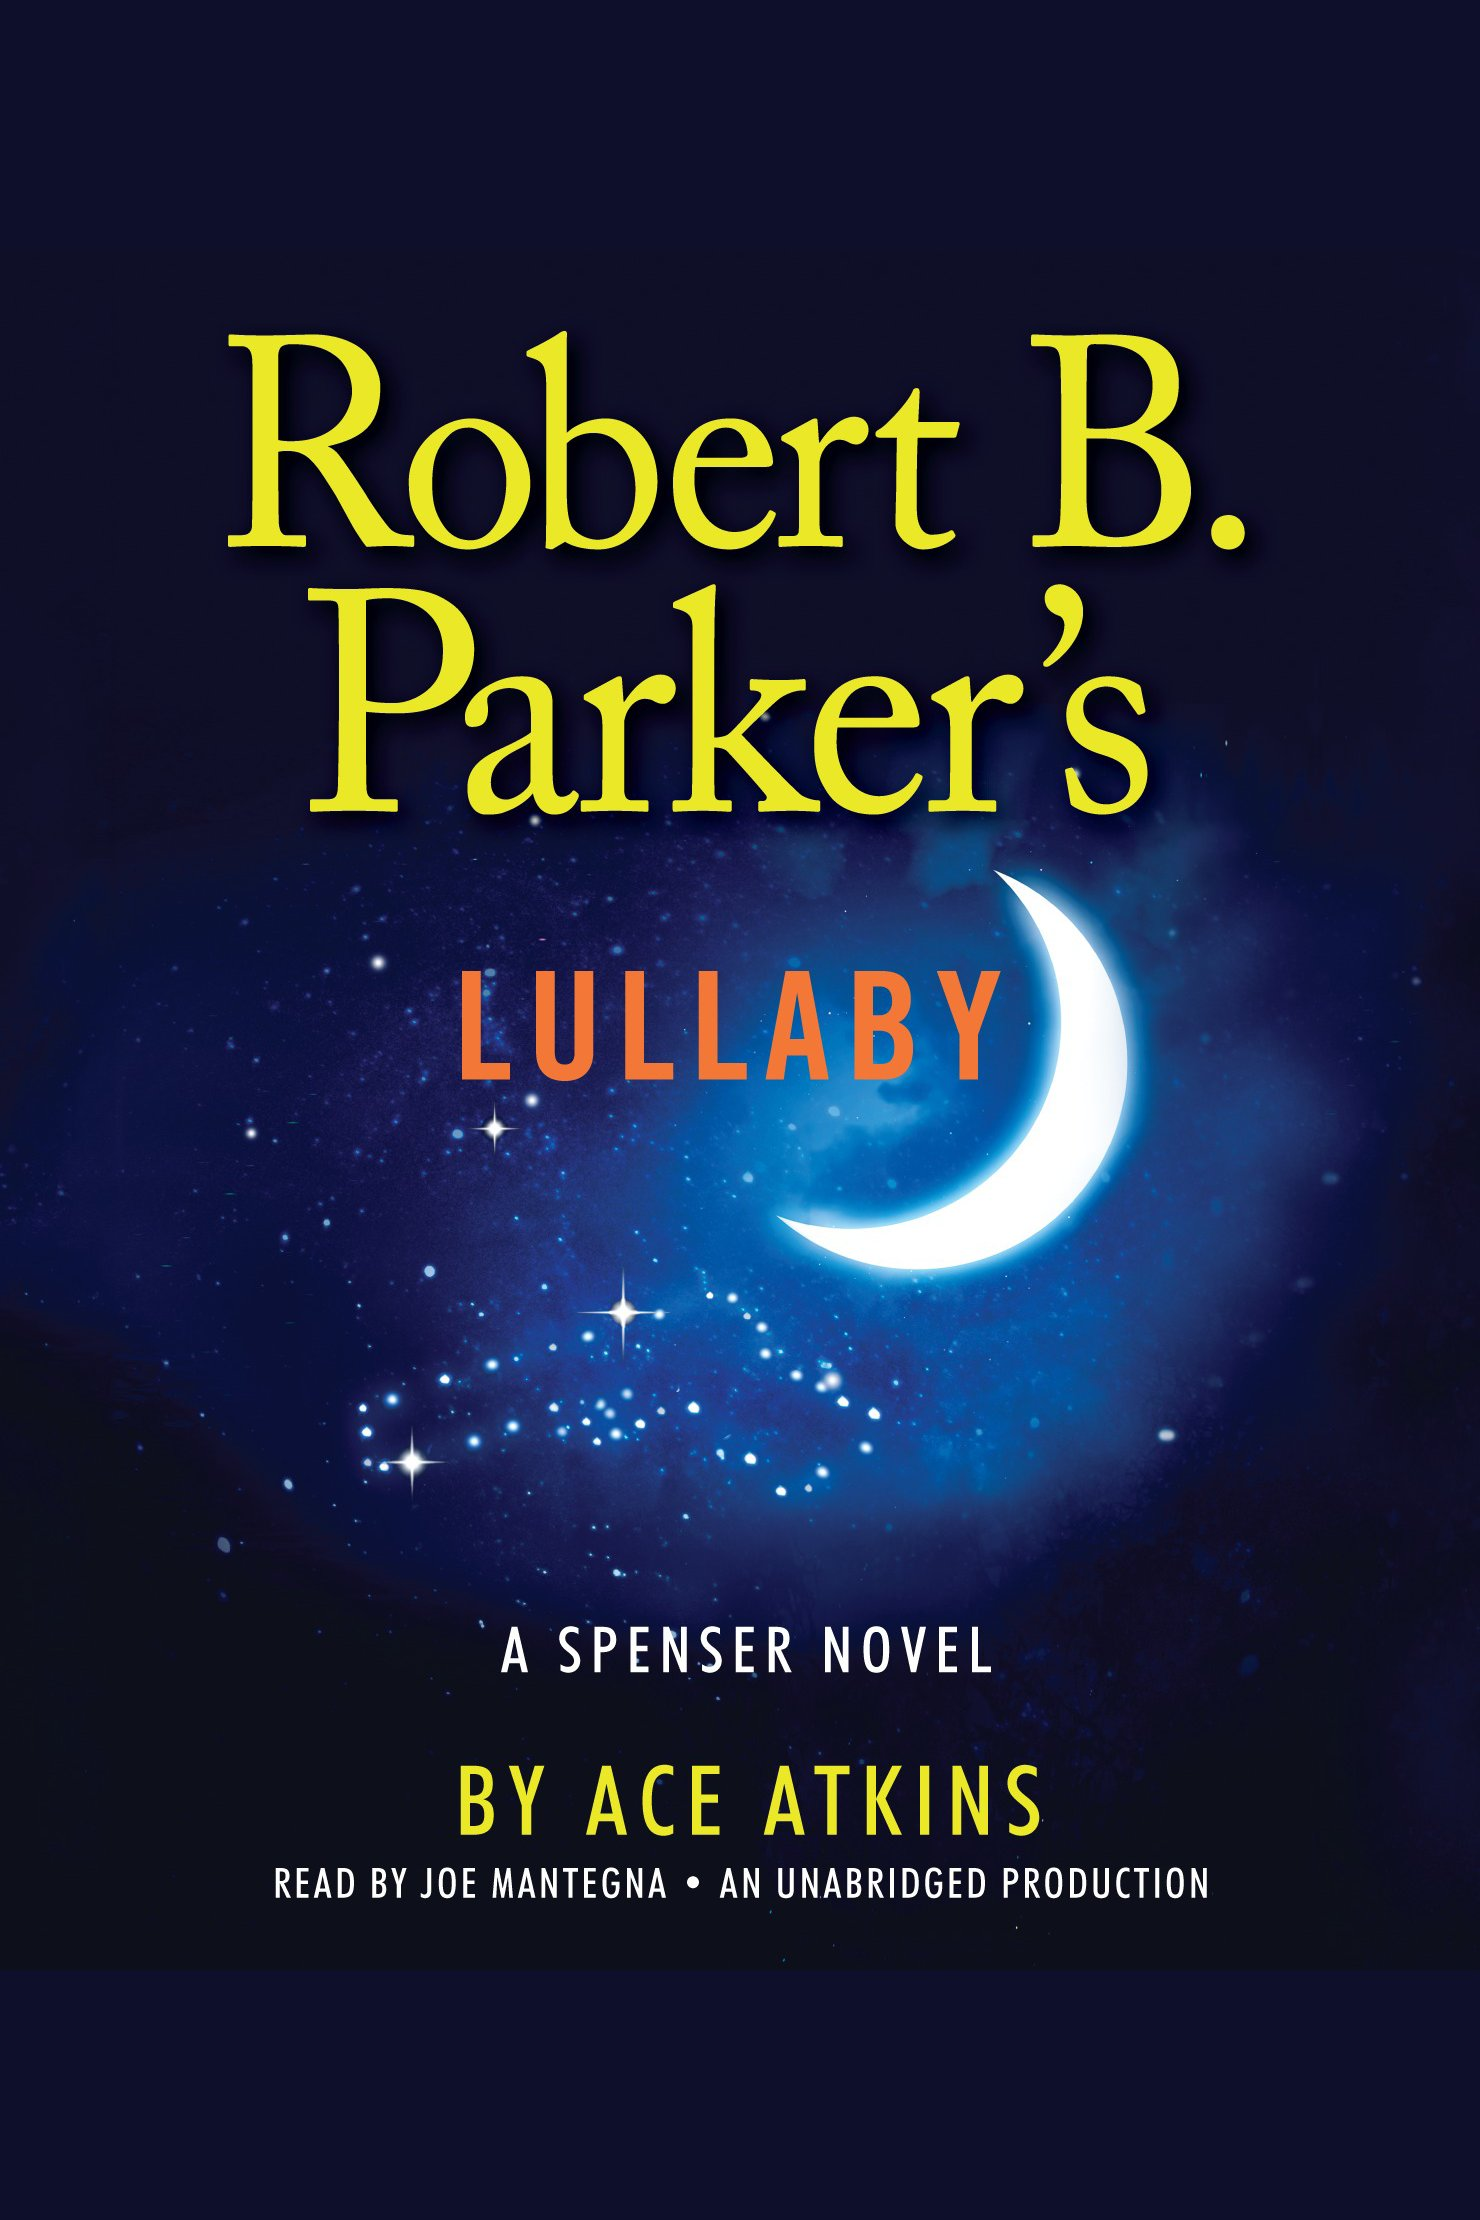 Robert B. Parker's lullaby cover image